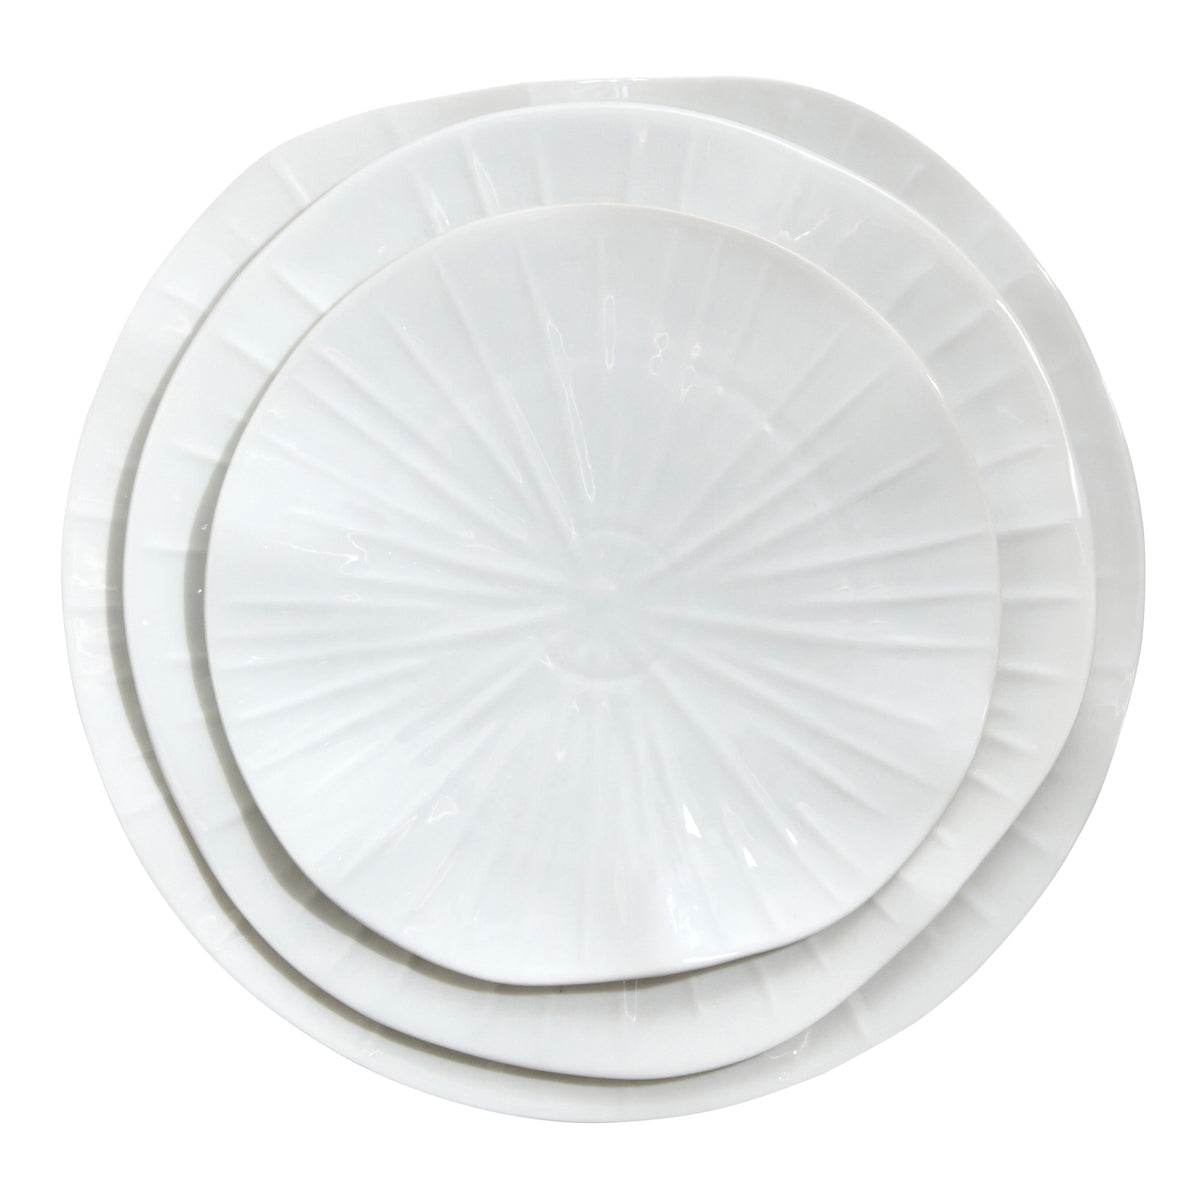 Lotus Porcelain White Dinner Plate